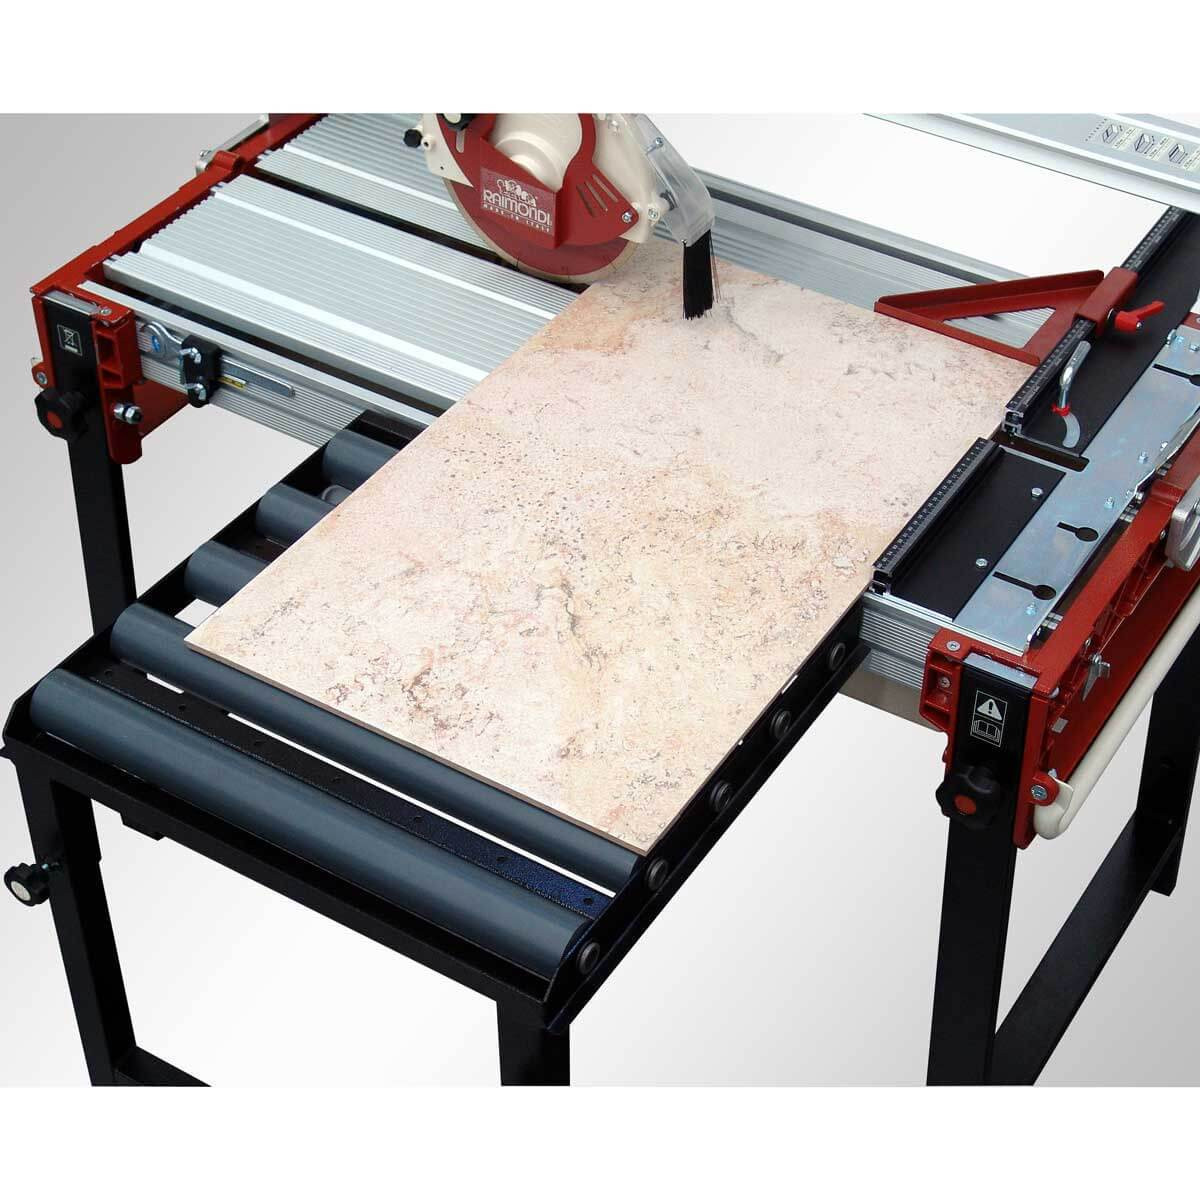 Raimondi rail saw with rolling extension table